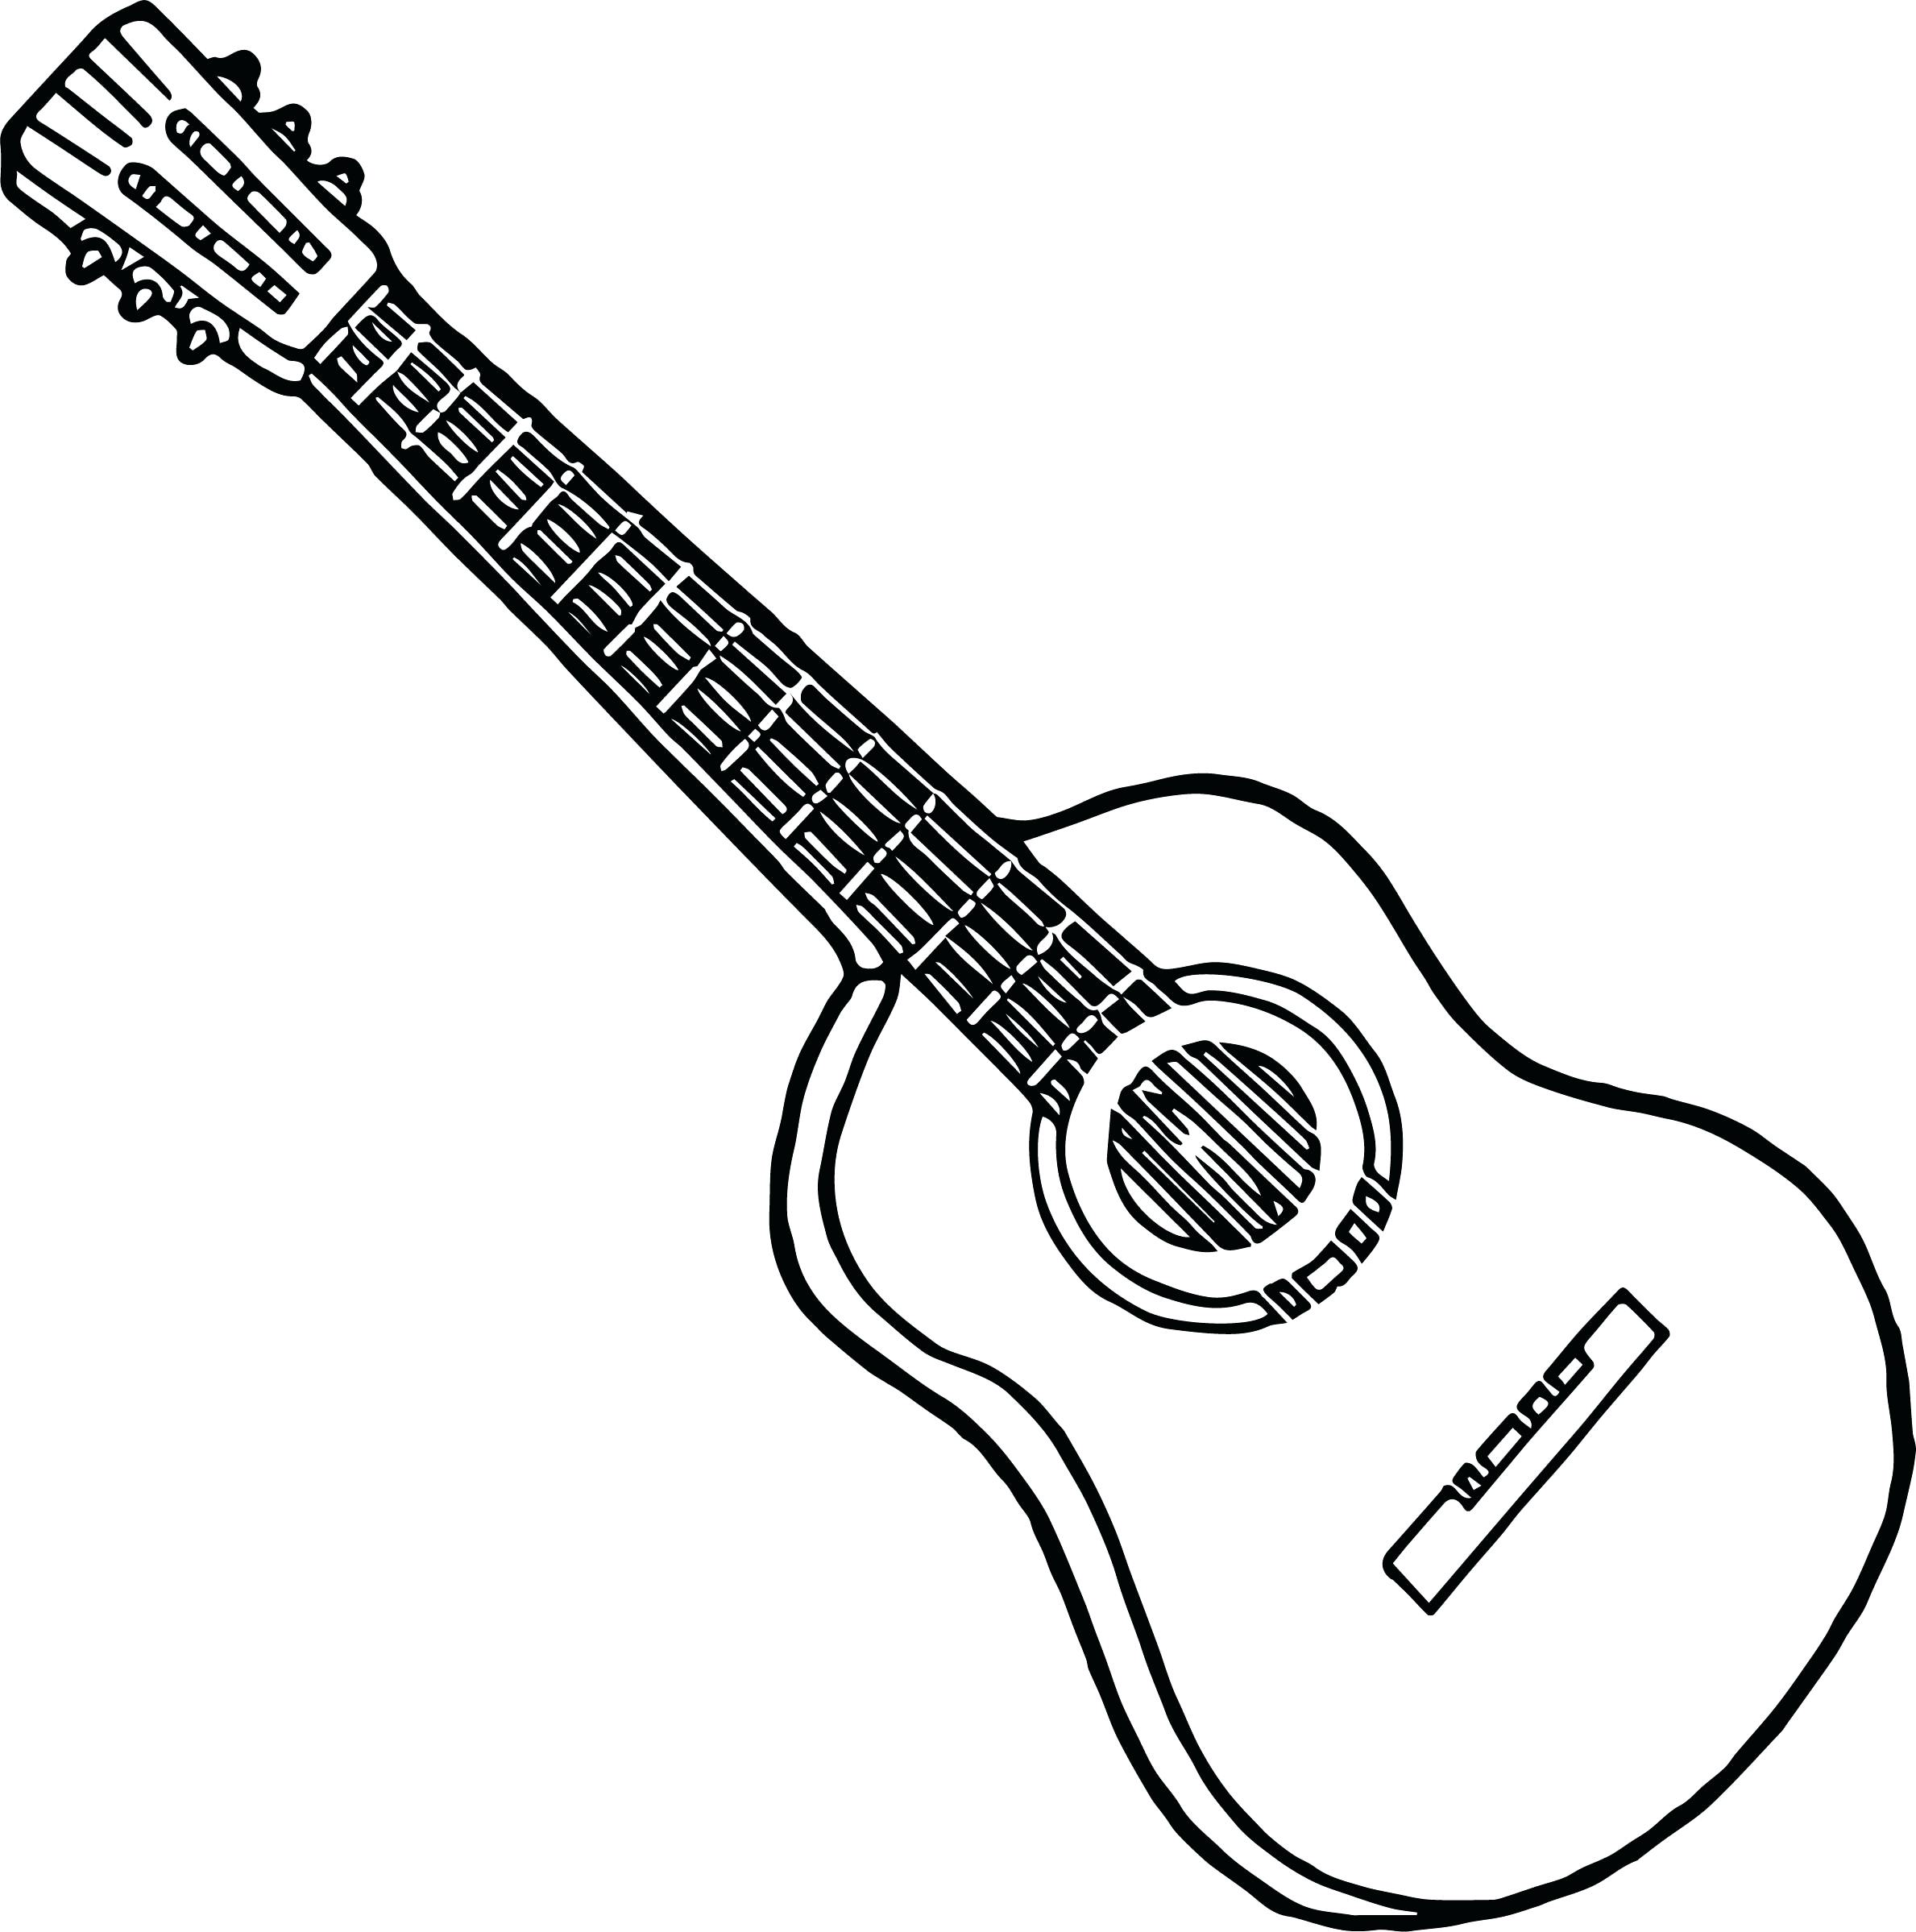 2378x2398 Coloring Guitar Coloring Pages Vector Of A Cartoon Dancing